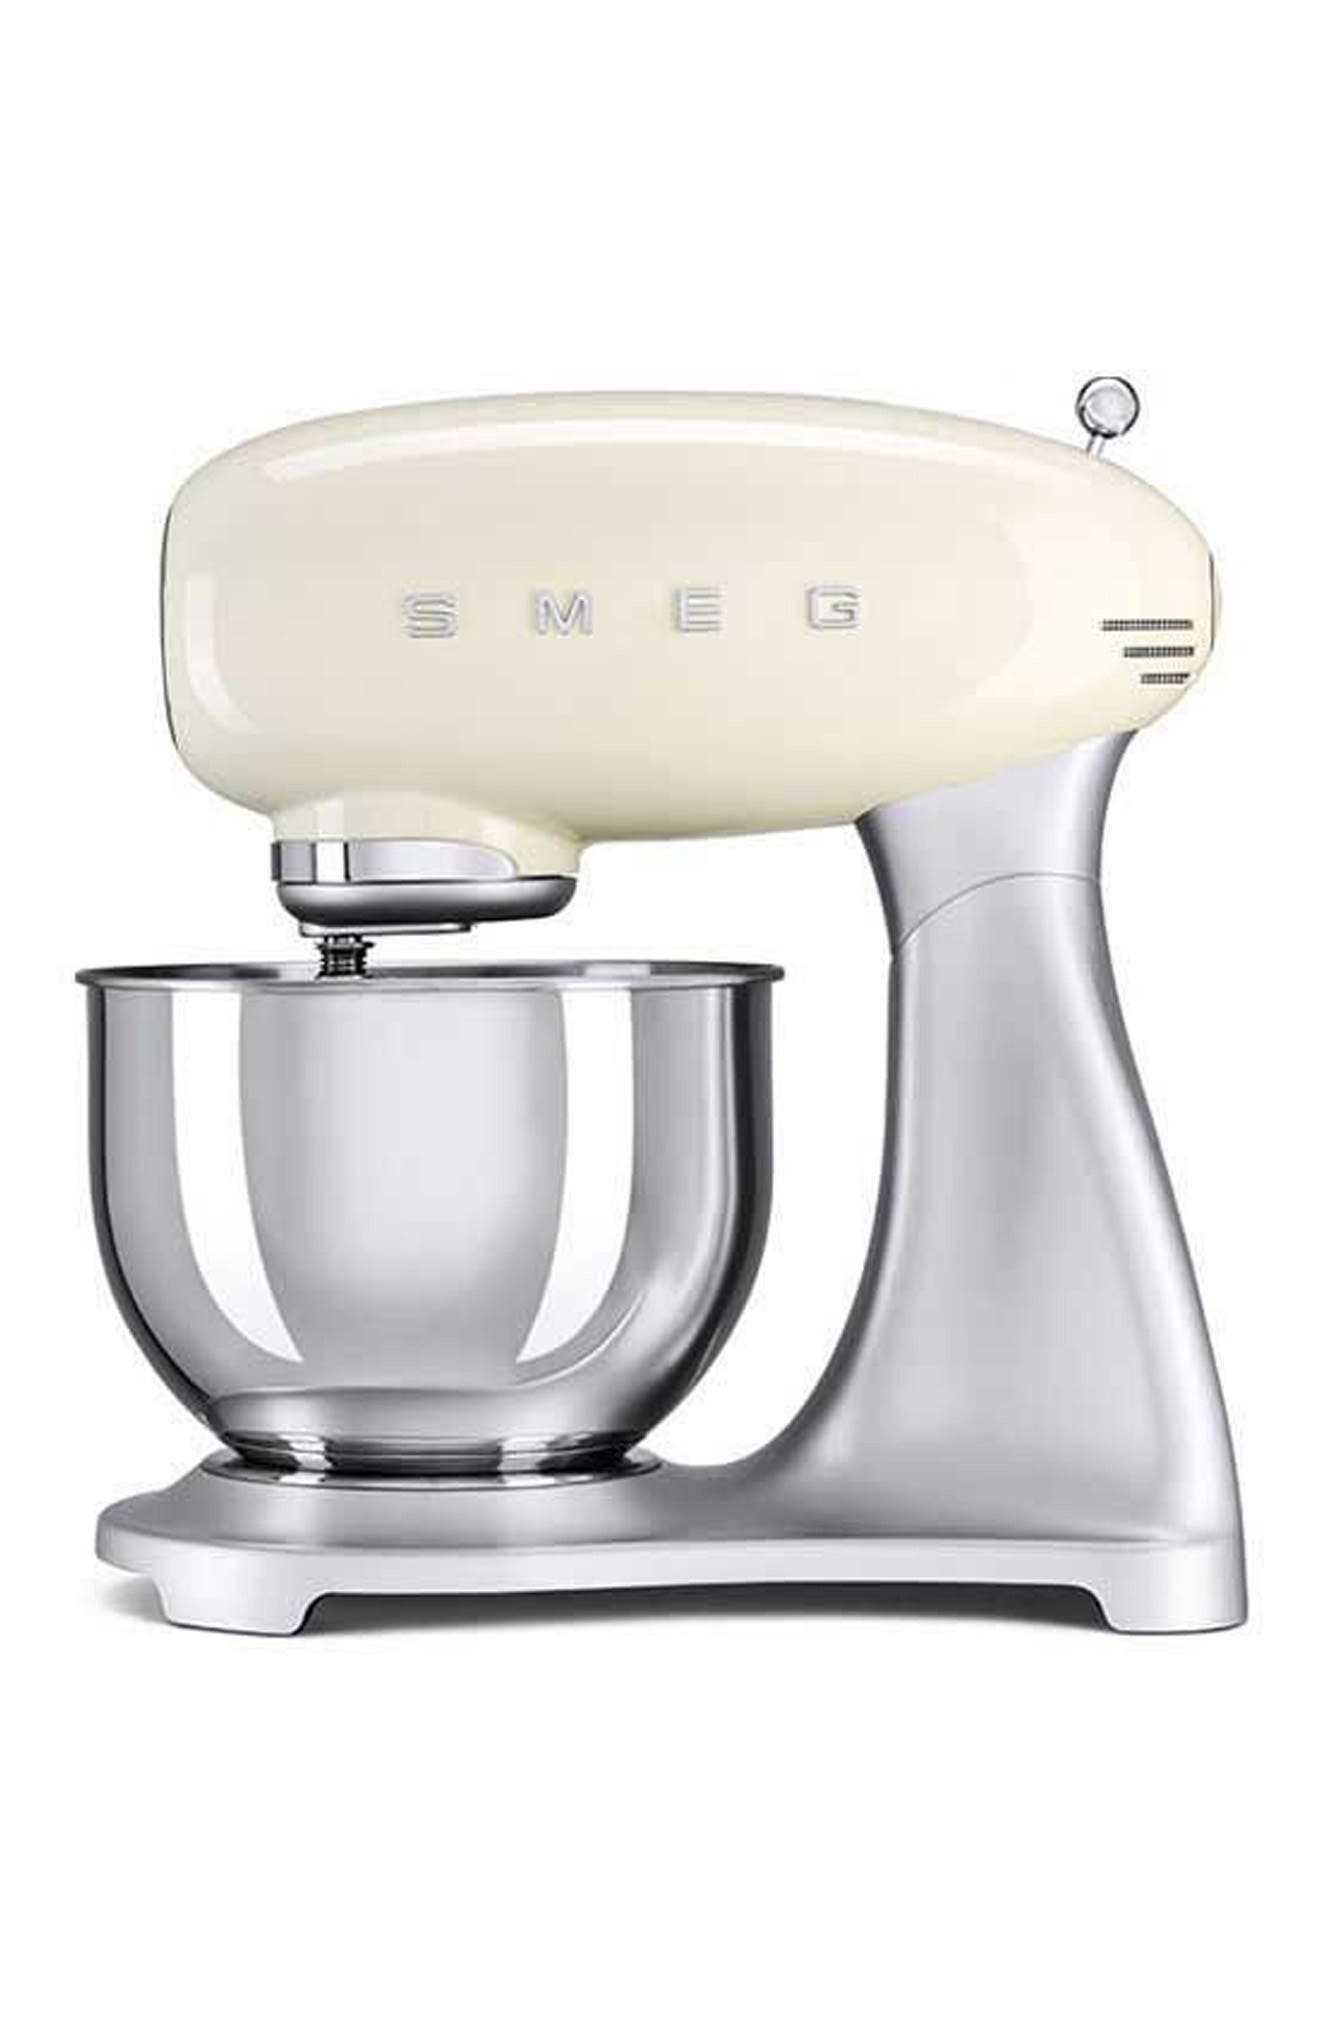 smeg 50s Retro Style Five-Quart Stand Mixer